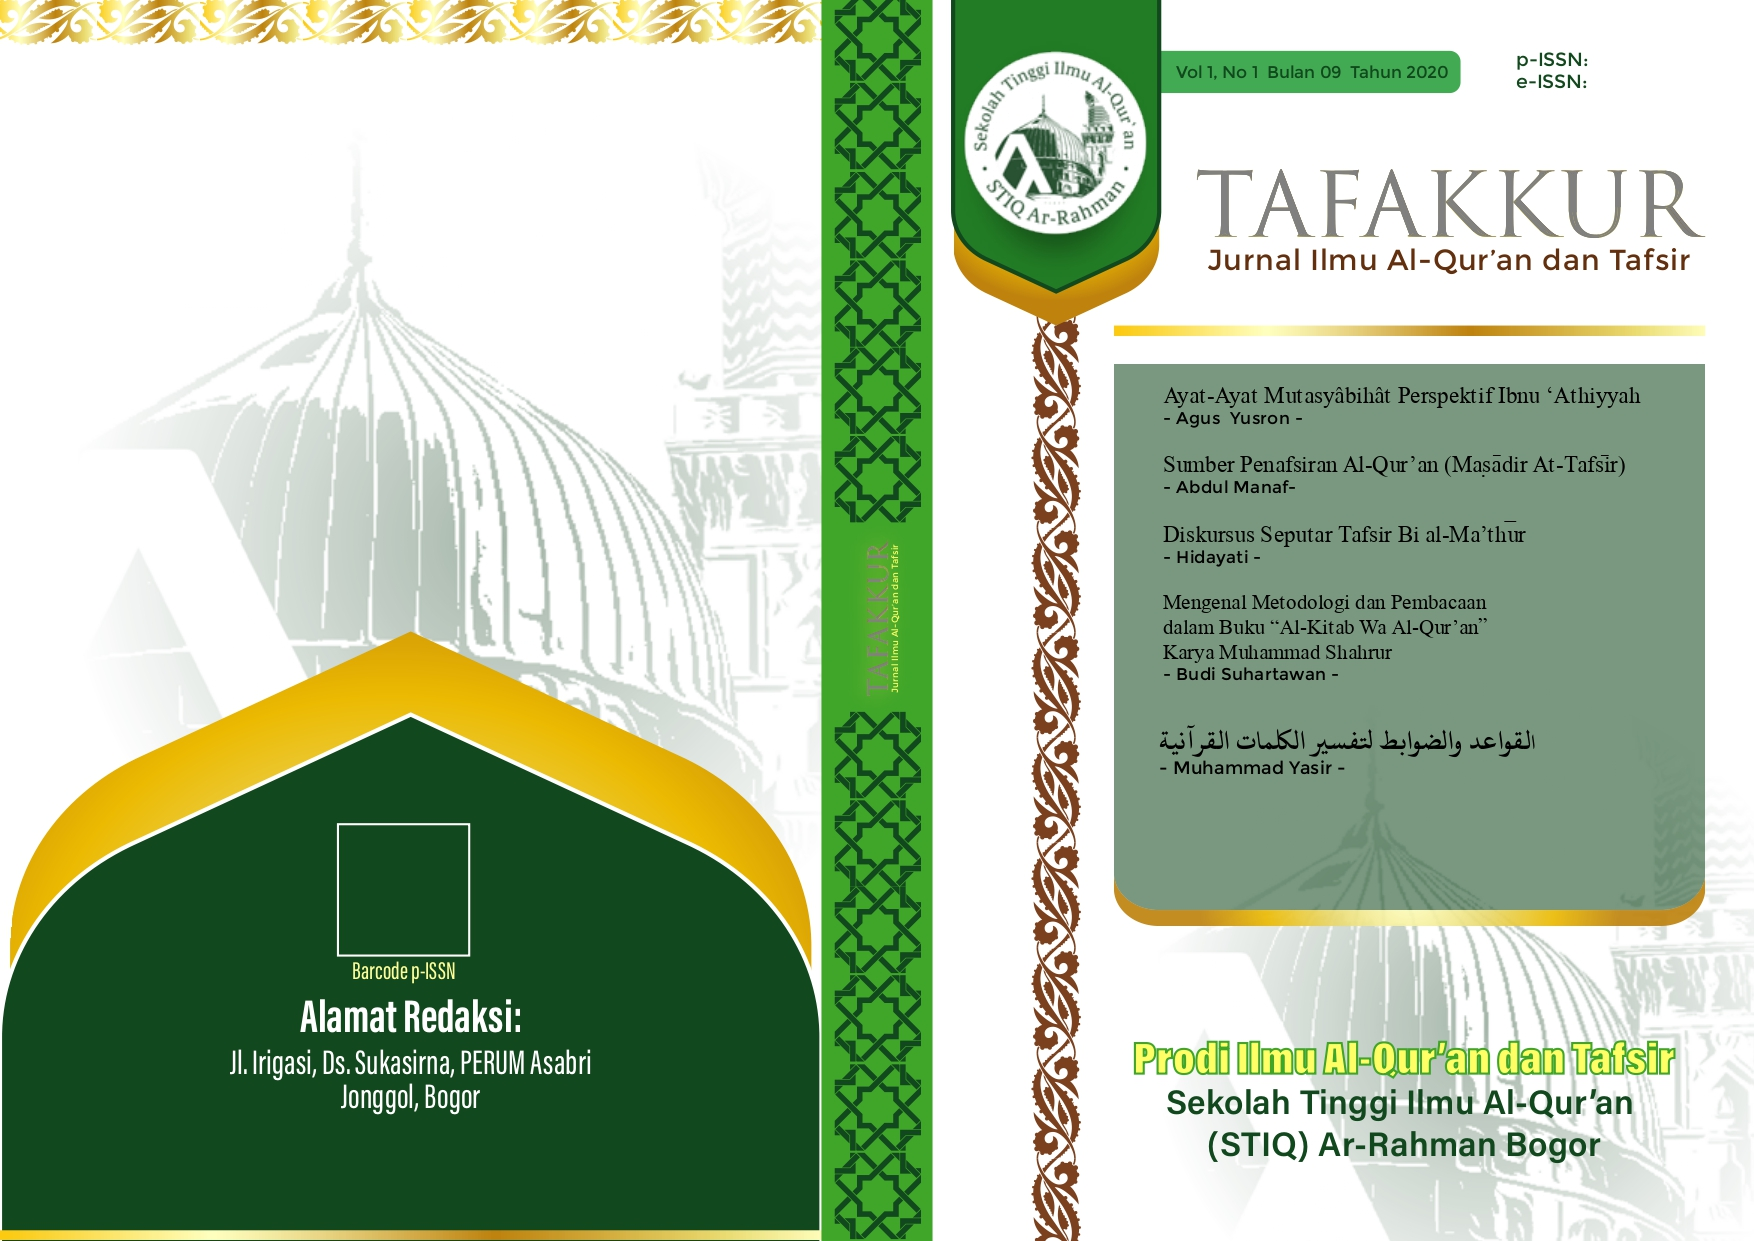 View Vol. 1 No. 1 (2020): TAFAKKUR : Jurnal Ilmu al-Qur'an dan Tafsir